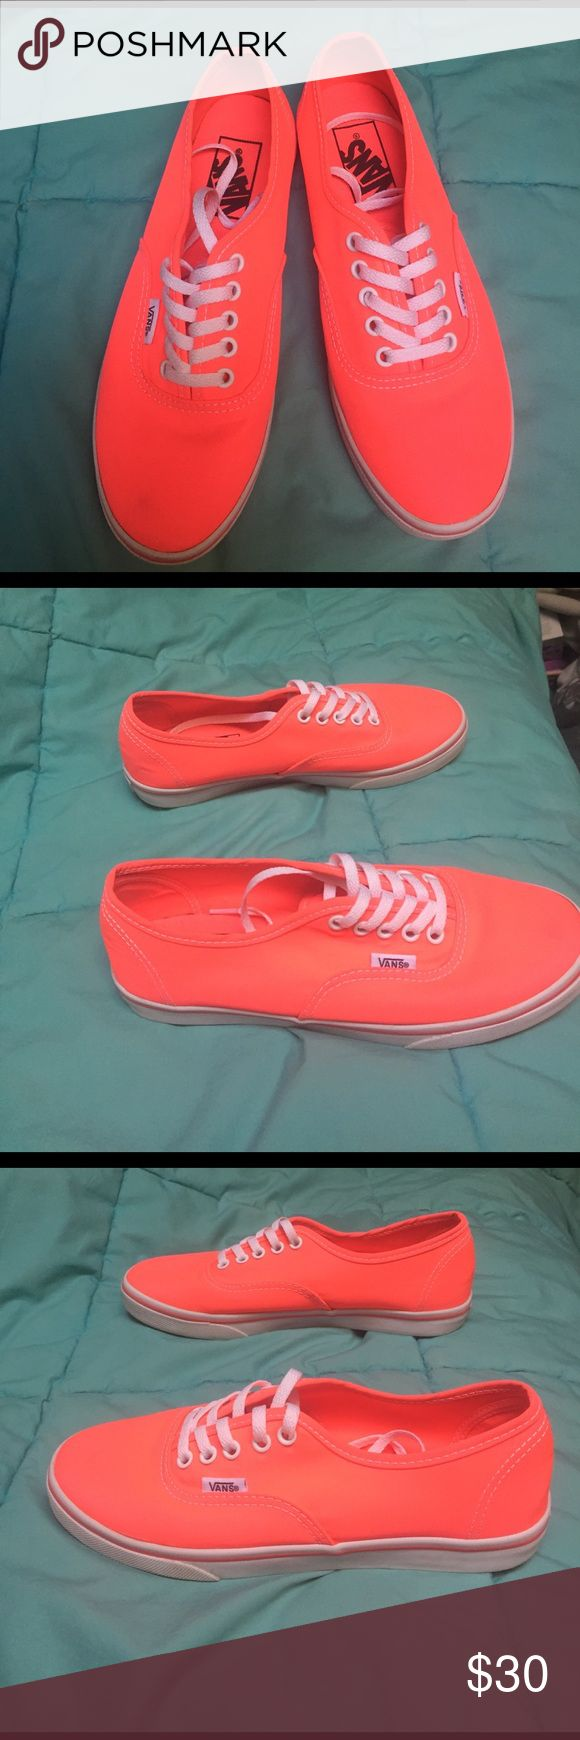 Lo Pro Neon Coral Vans Only ever wore them once, hard to find outfits to wear with them. Super cute! Super comfy! Vans Shoes Sneakers